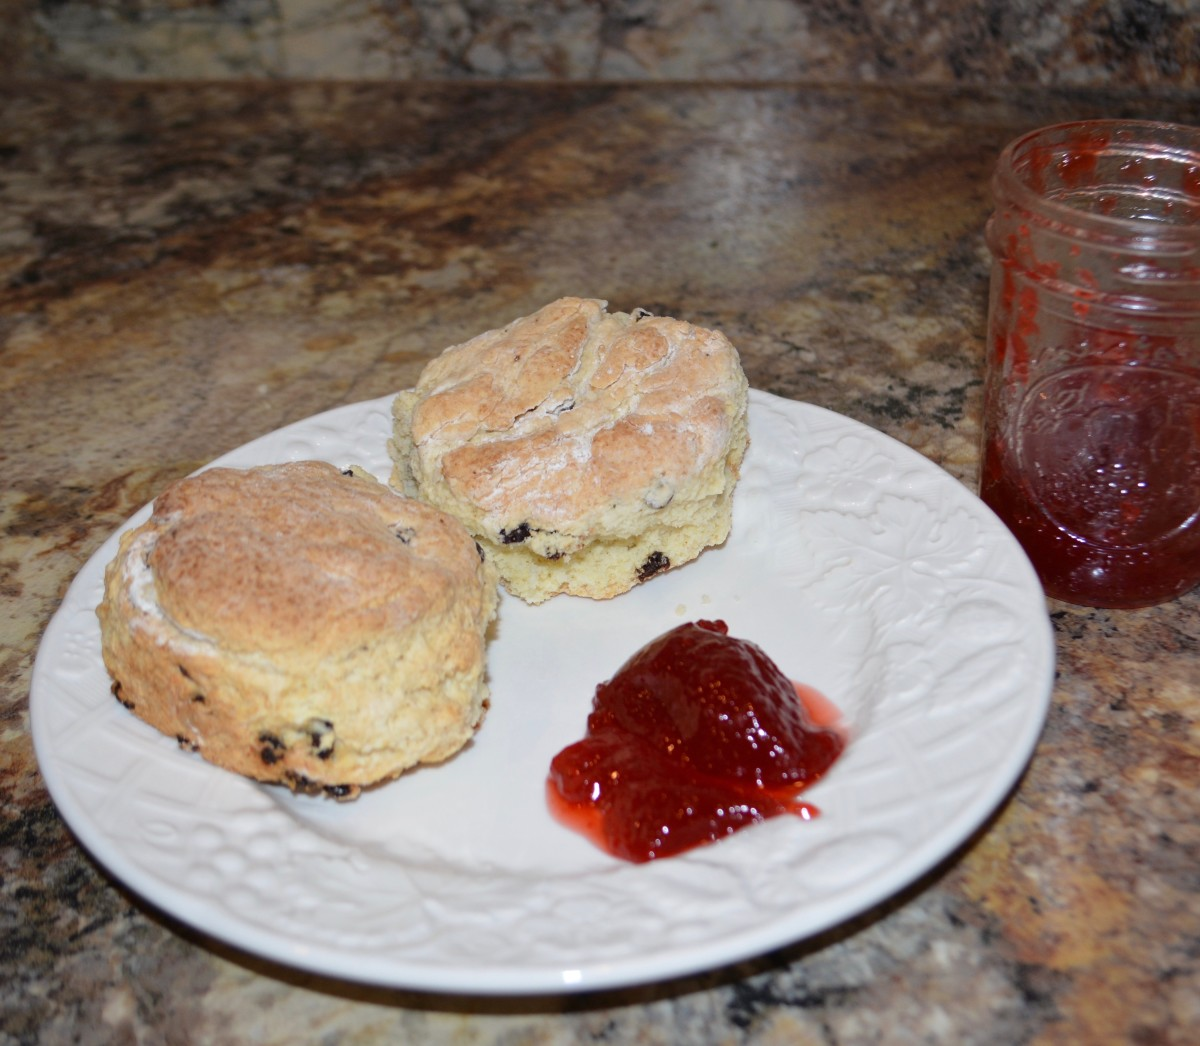 Scones and strawberry jam – it doesn't get any better than this. Well, maybe with a cup of tea, of course.